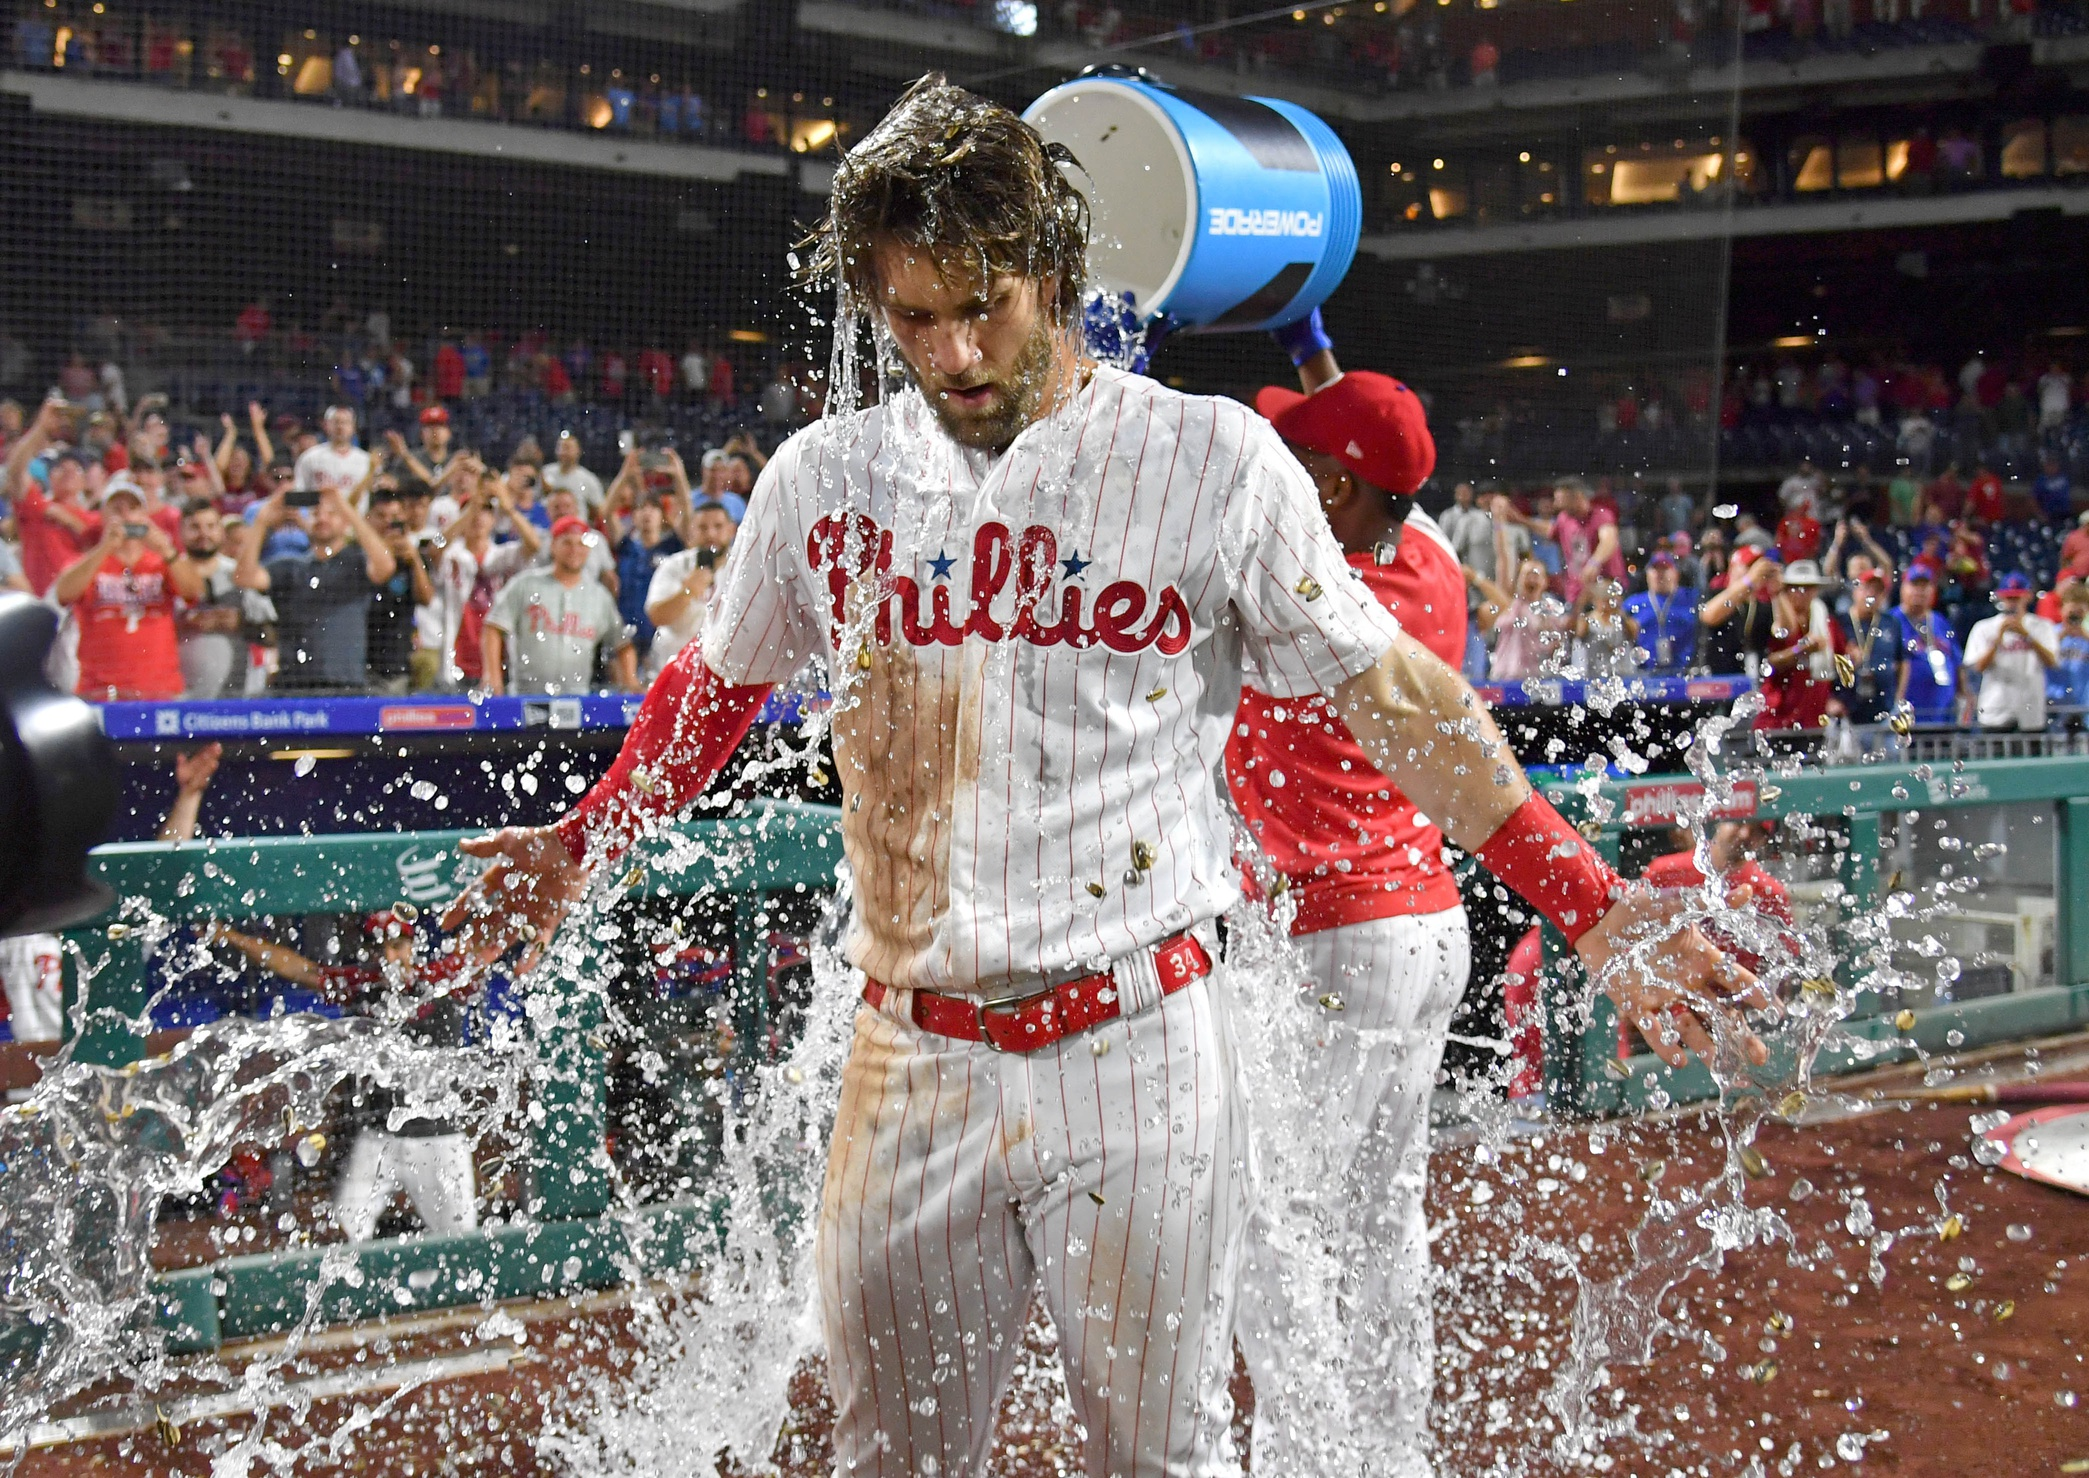 Here are the TV and Radio Calls of Bryce Harper's Walk-off Hit - Crossing Broad